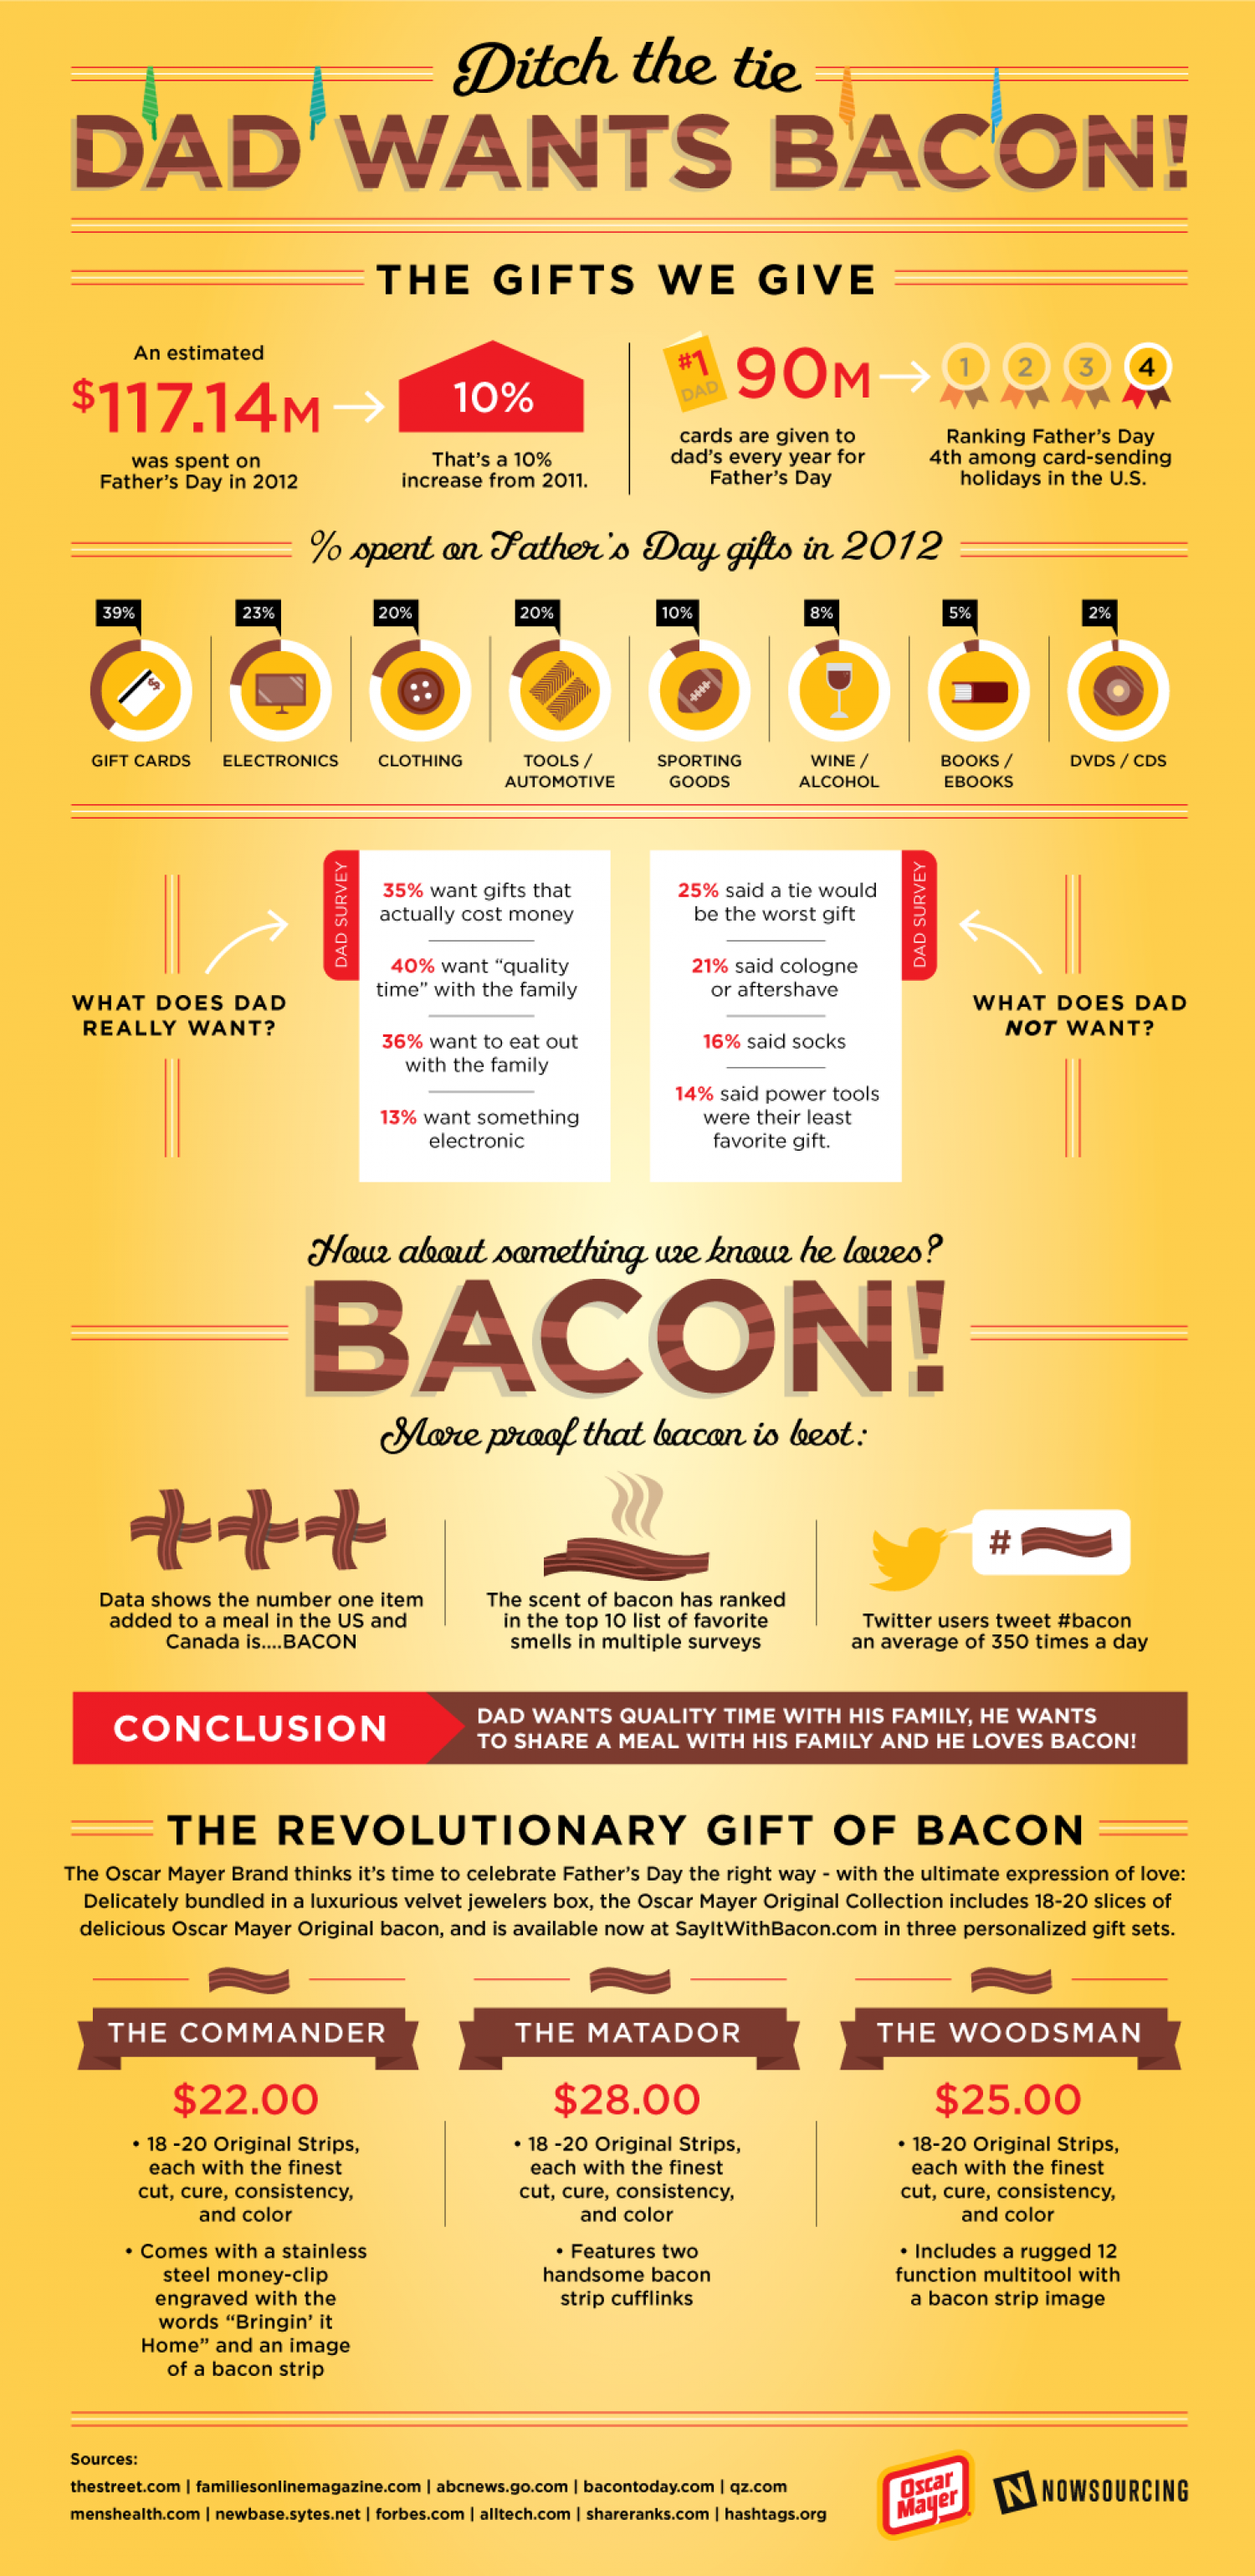 Ditch the Tie, Dad Wants Bacon! Infographic